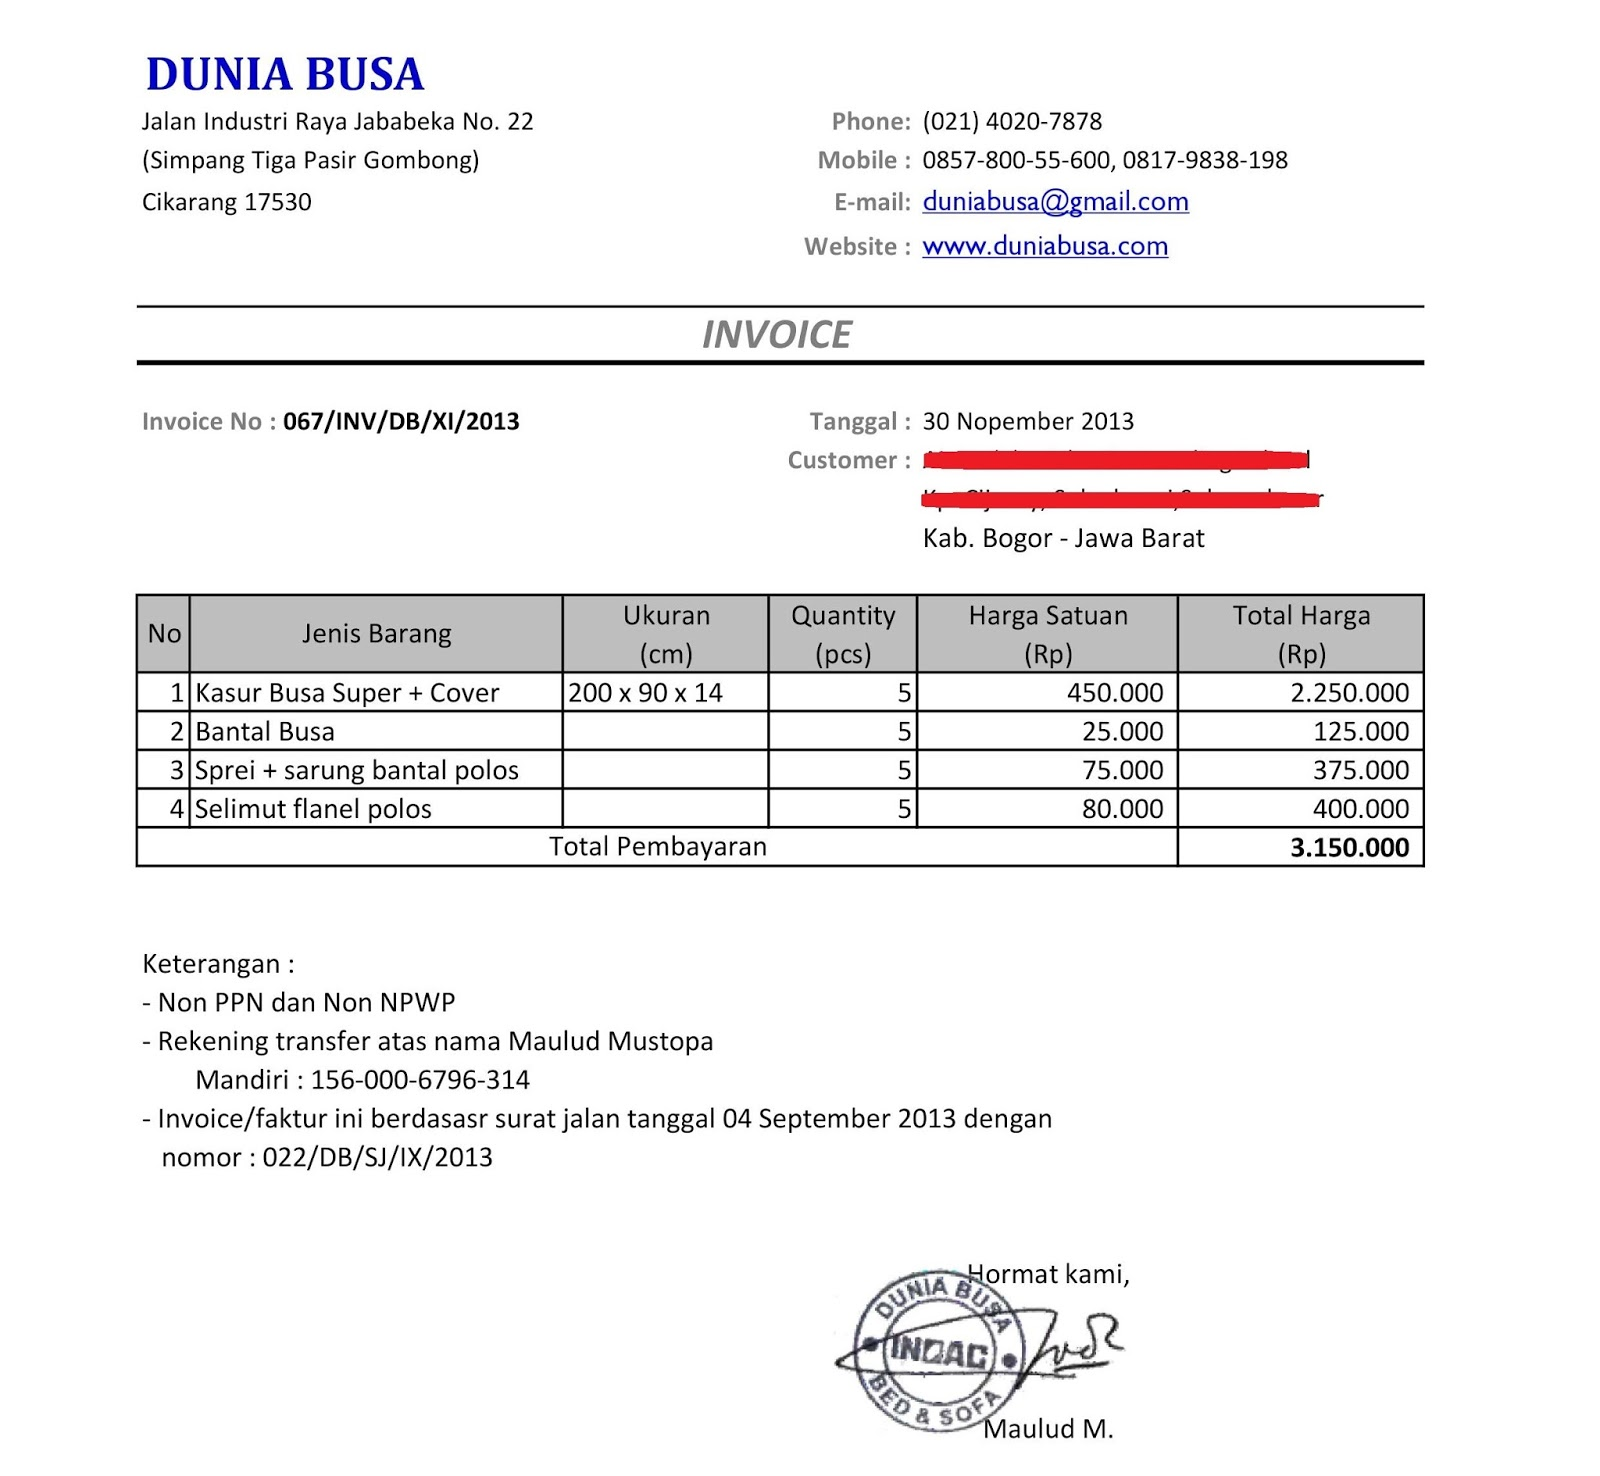 Centralasianshepherdus  Surprising Free Invoice Online  Create Invoice Online  Invoice Template  With Exciting Contoh Format Invoice Atau Surat Tagihan  Brankas Arsip  Free Invoice Online With Extraordinary Invoice Sheets Printable Also Invoice Discount In Addition How To Create An Invoice Template And On Line Invoice As Well As Selling Invoices Additionally Free Invoice Samples From Sklepco With Centralasianshepherdus  Exciting Free Invoice Online  Create Invoice Online  Invoice Template  With Extraordinary Contoh Format Invoice Atau Surat Tagihan  Brankas Arsip  Free Invoice Online And Surprising Invoice Sheets Printable Also Invoice Discount In Addition How To Create An Invoice Template From Sklepco